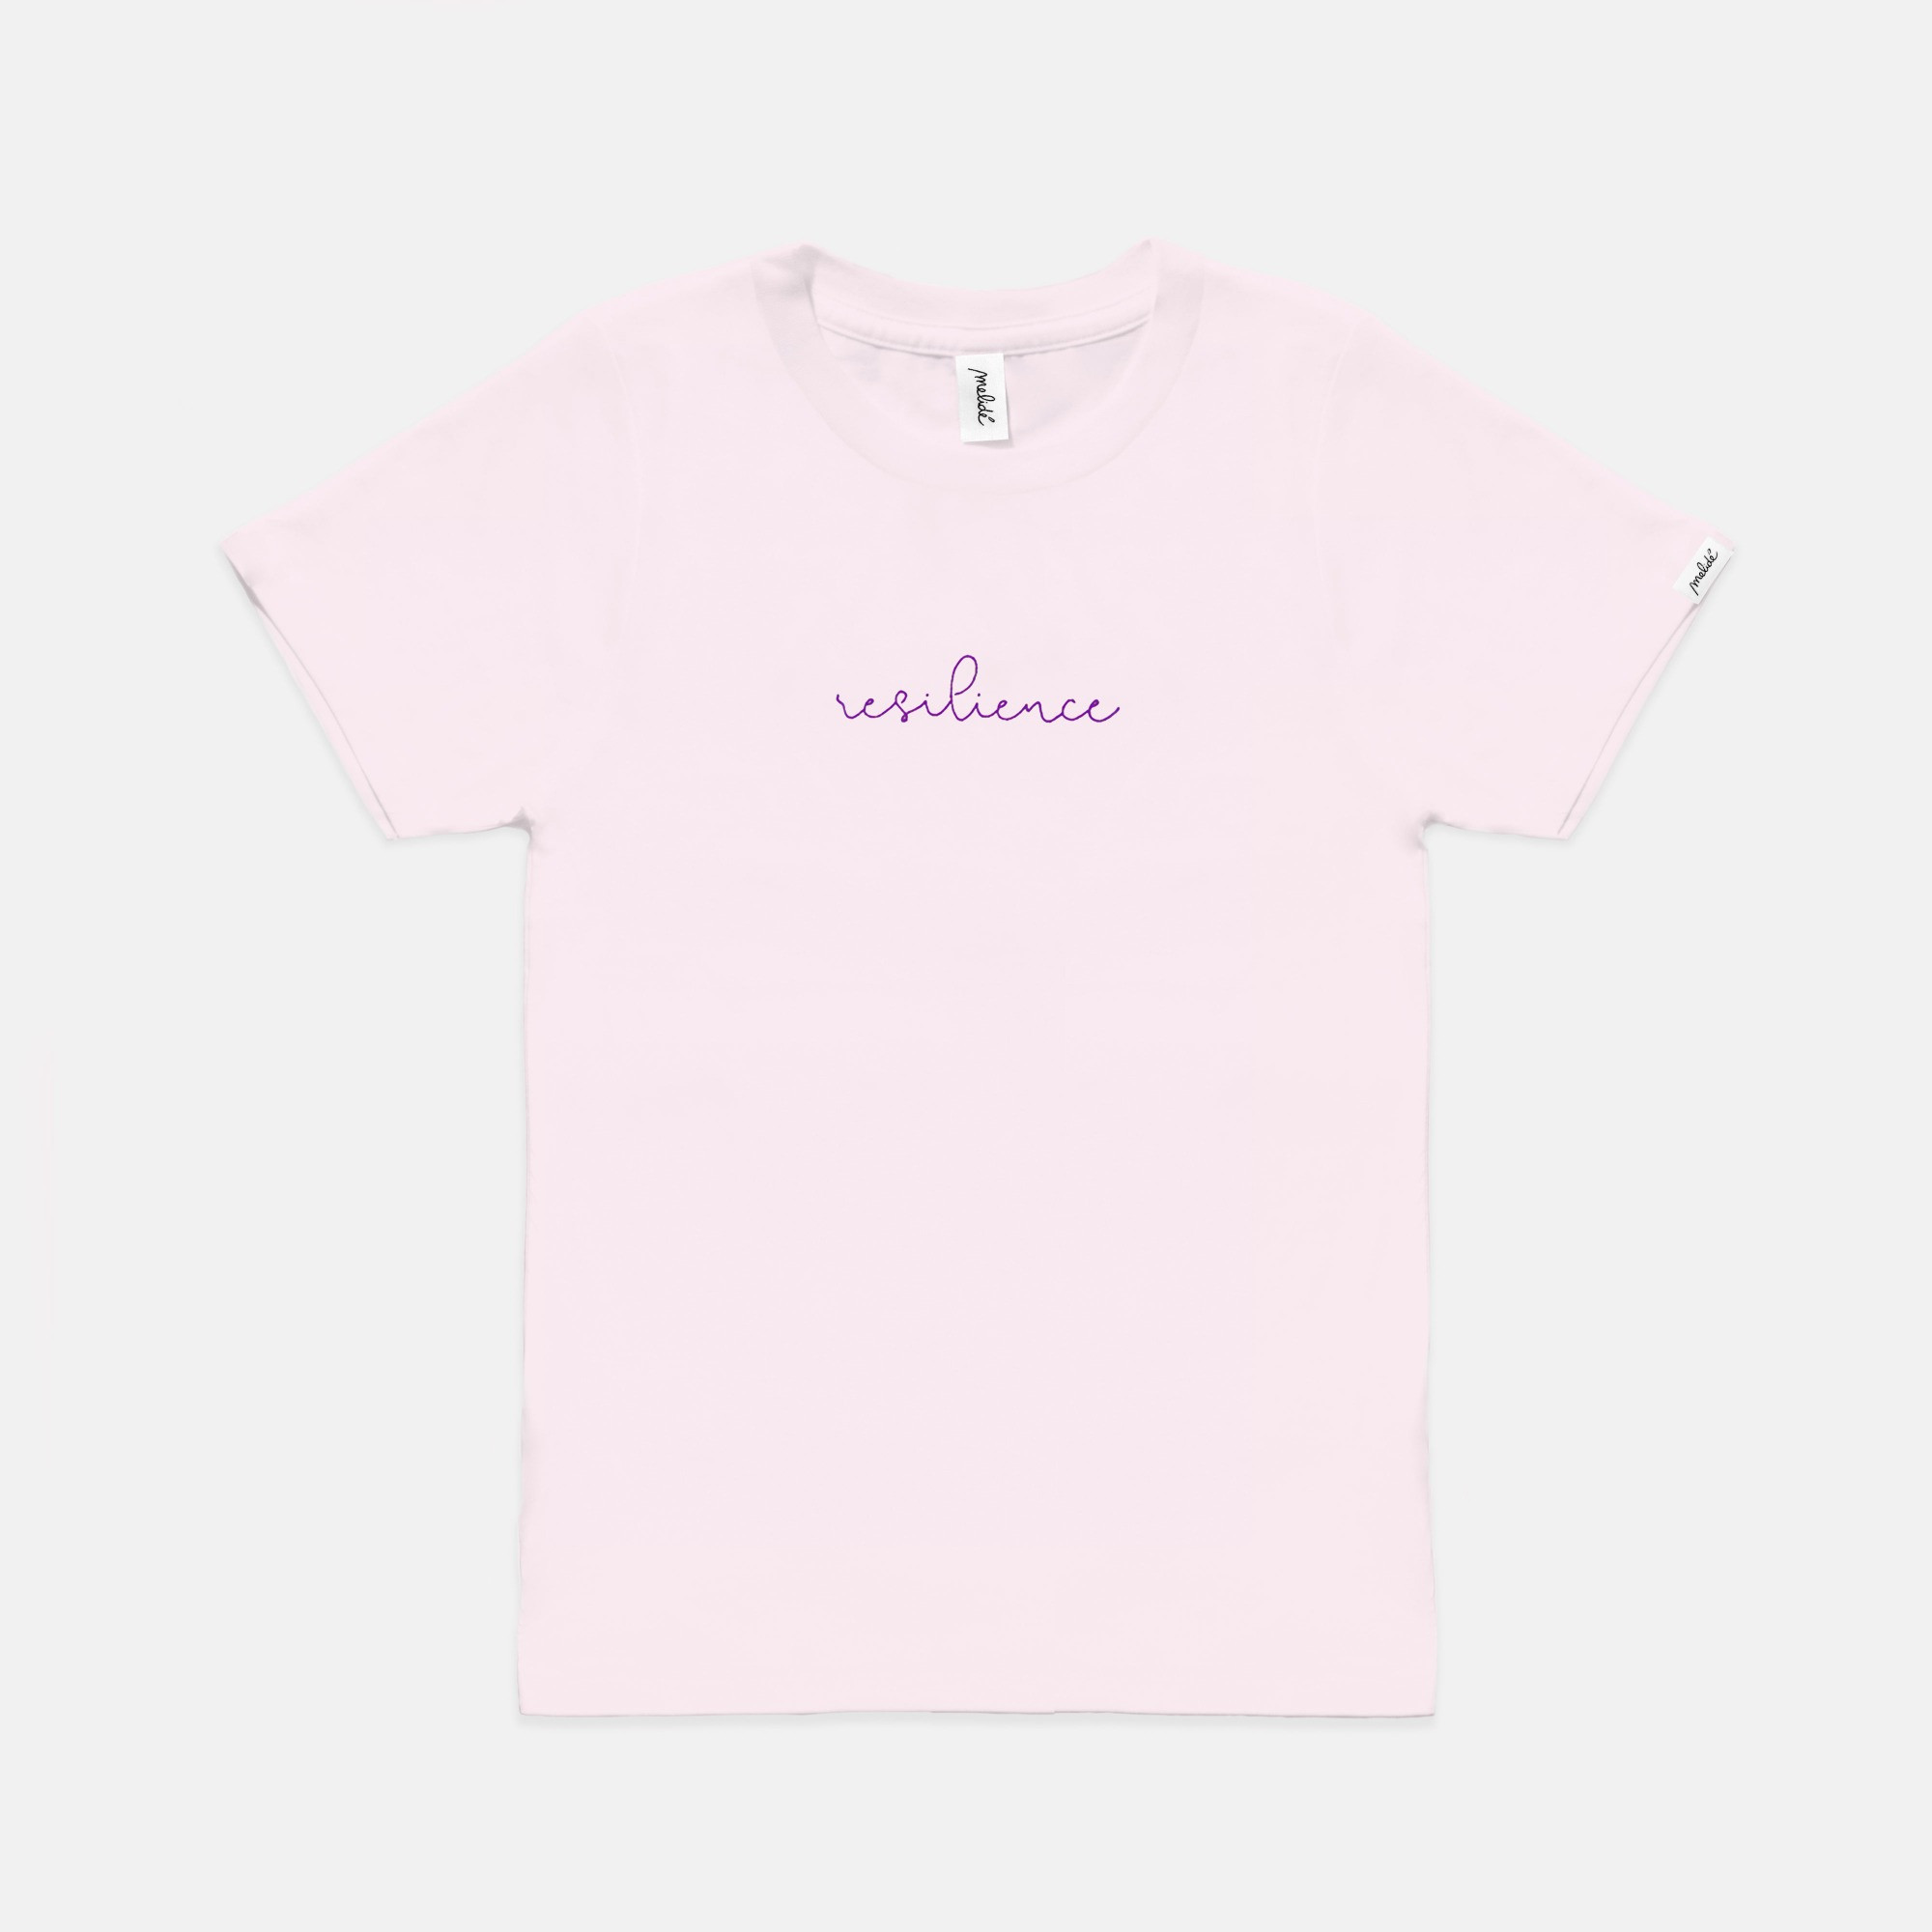 The RESILIENCE Tee